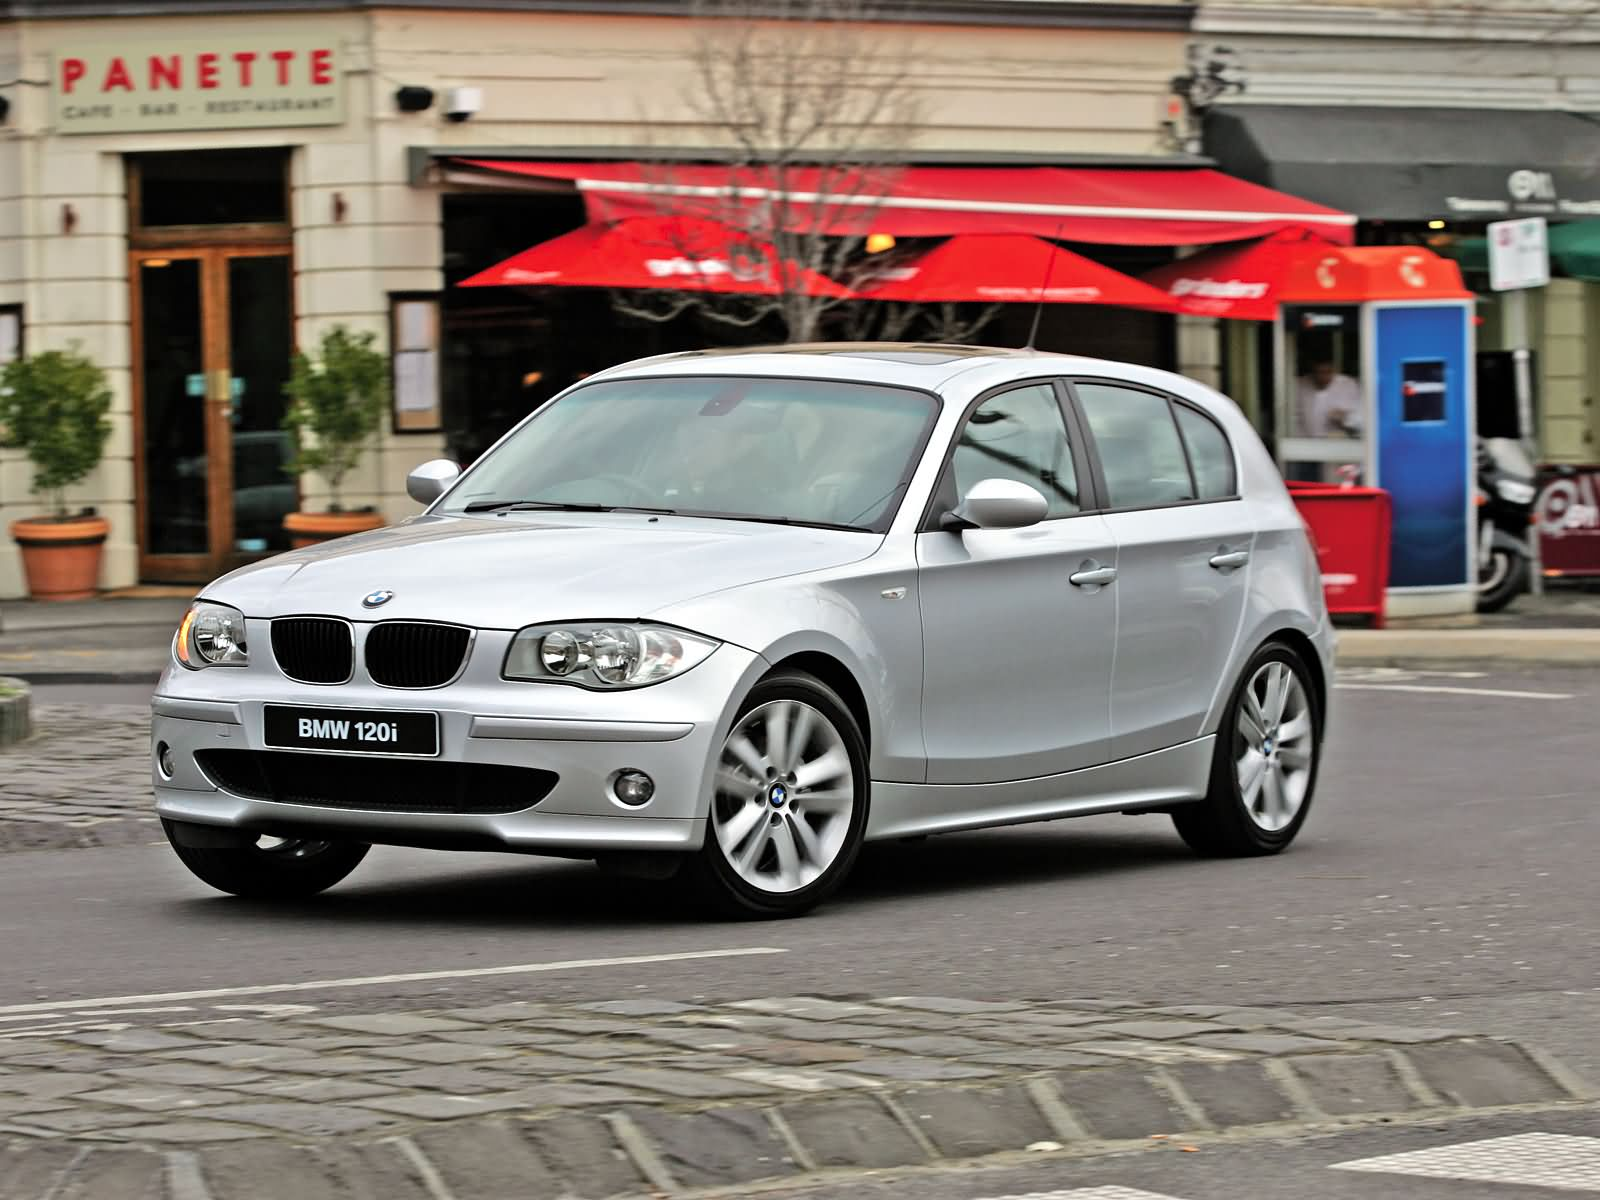 bmw 1 series 5 door e87 photos photo gallery page 3. Black Bedroom Furniture Sets. Home Design Ideas